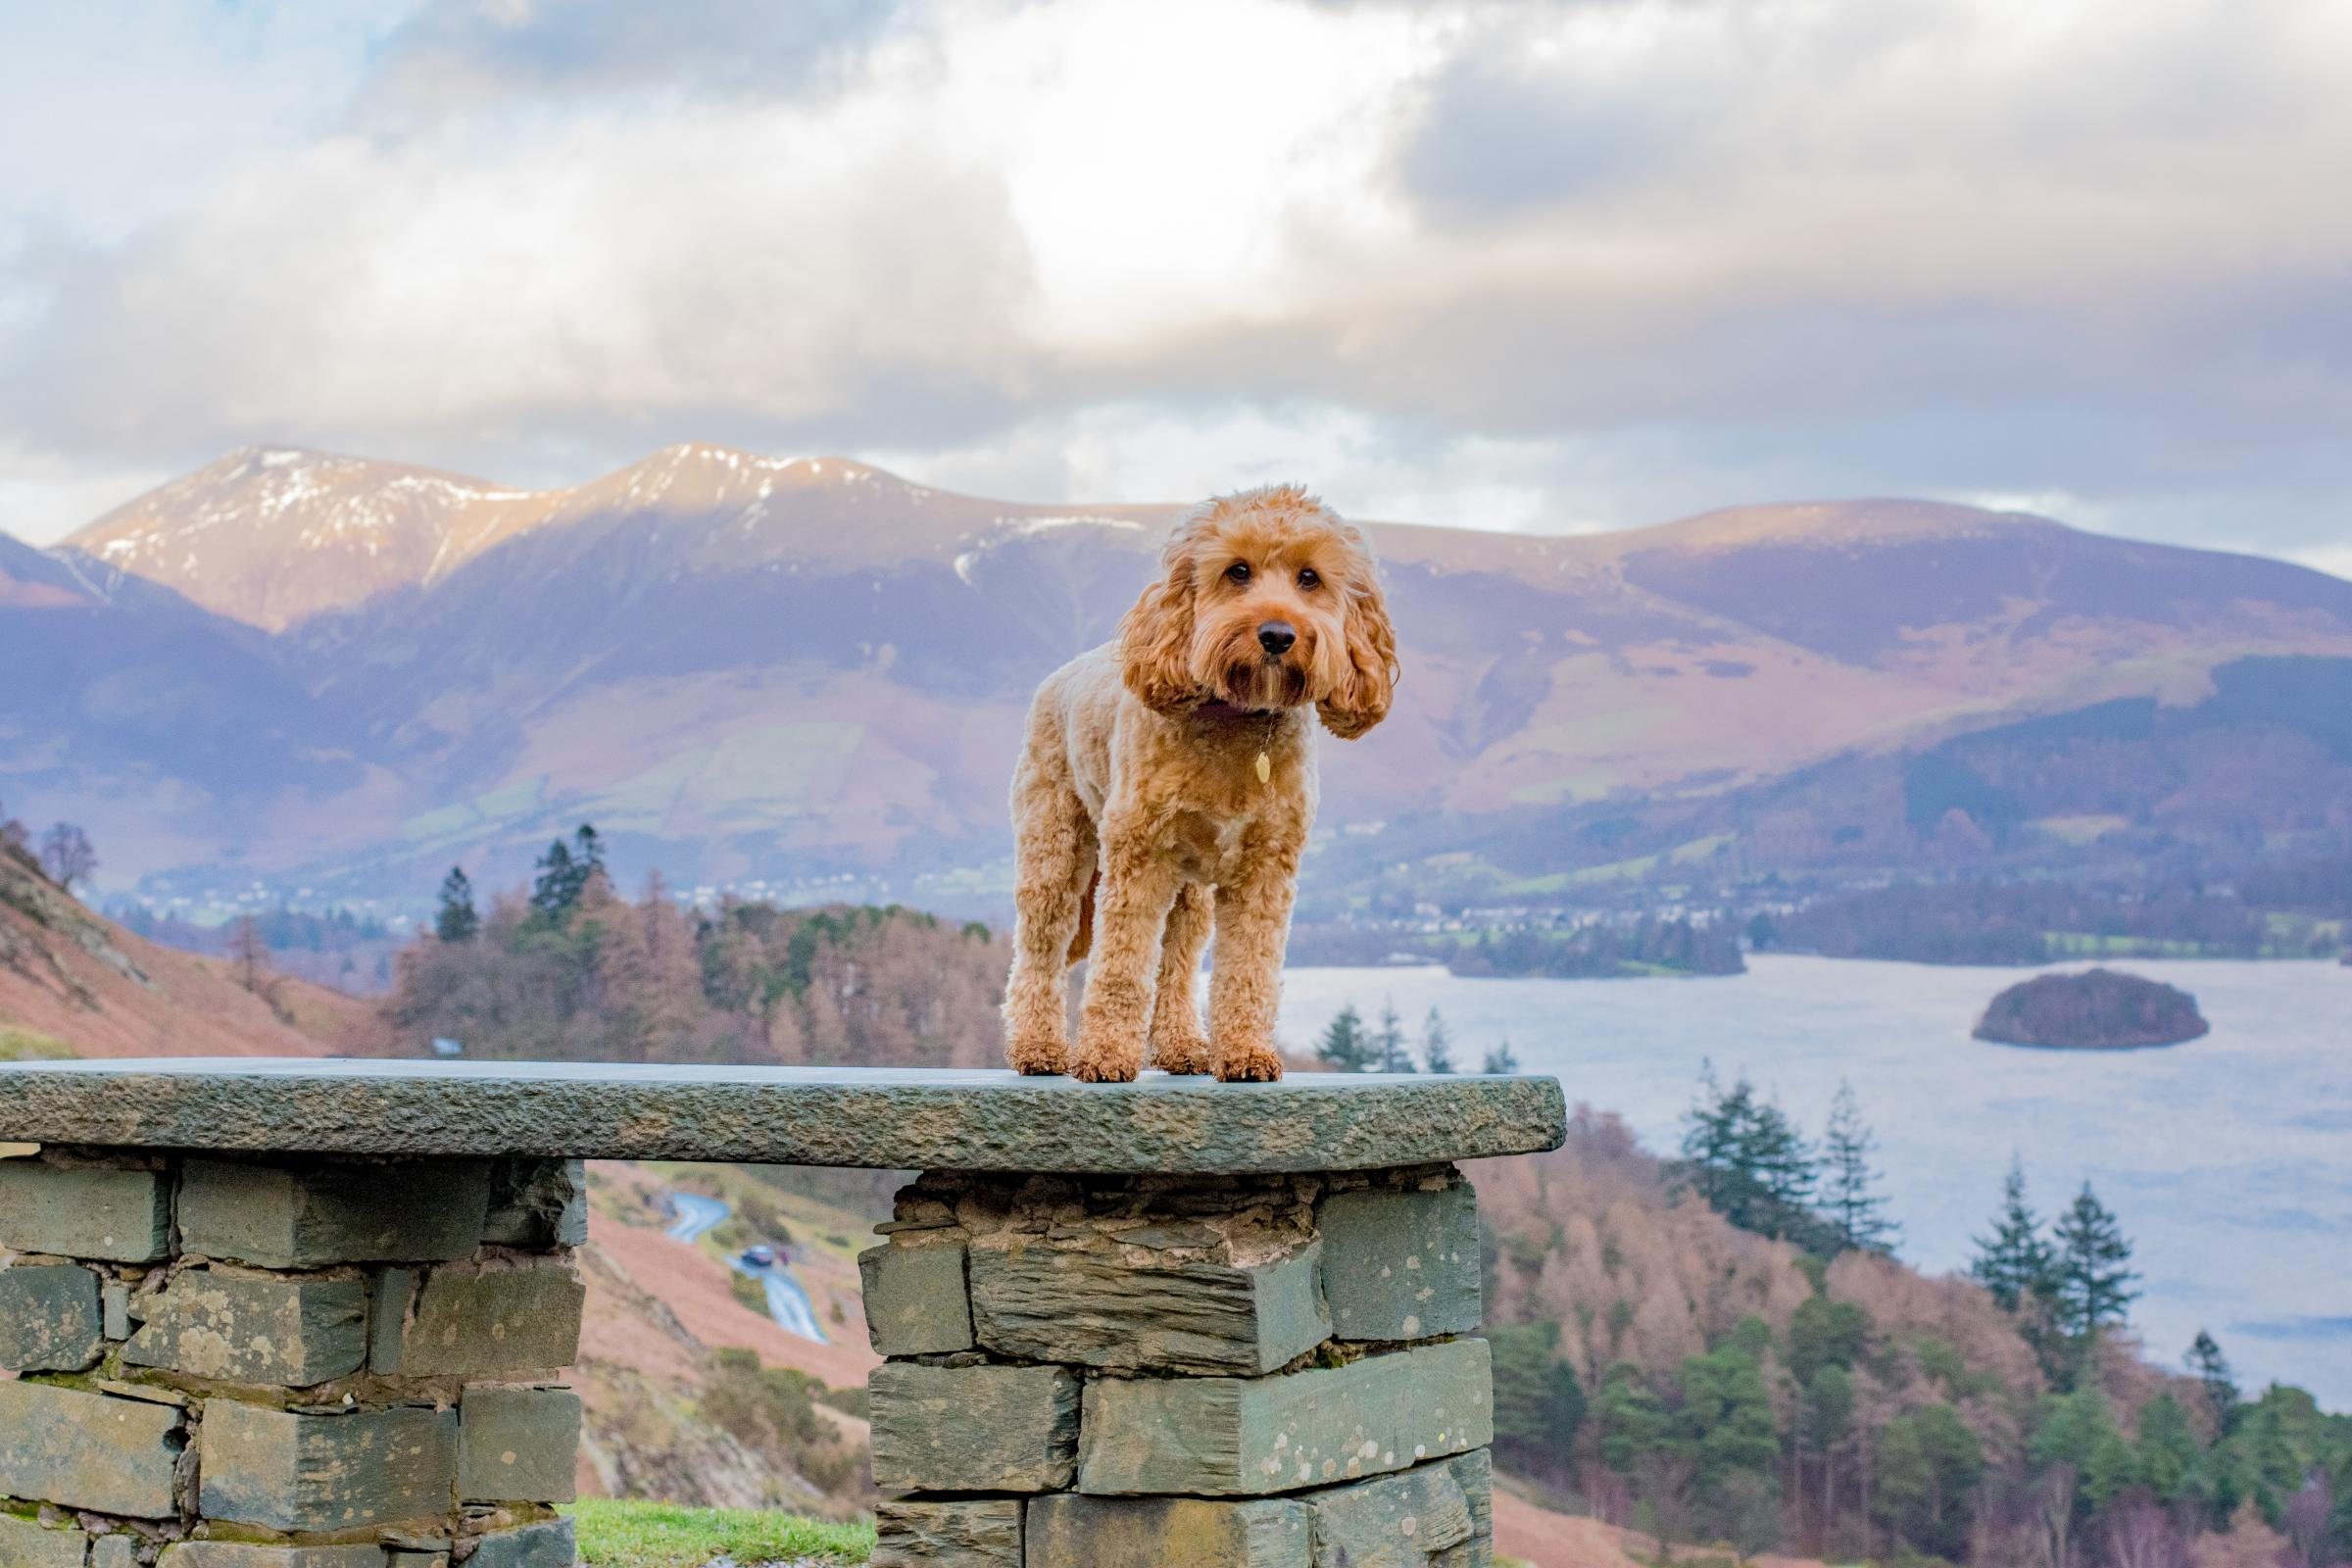 Canine Critics wanted: How you and your dog could get FREE holidays and days out